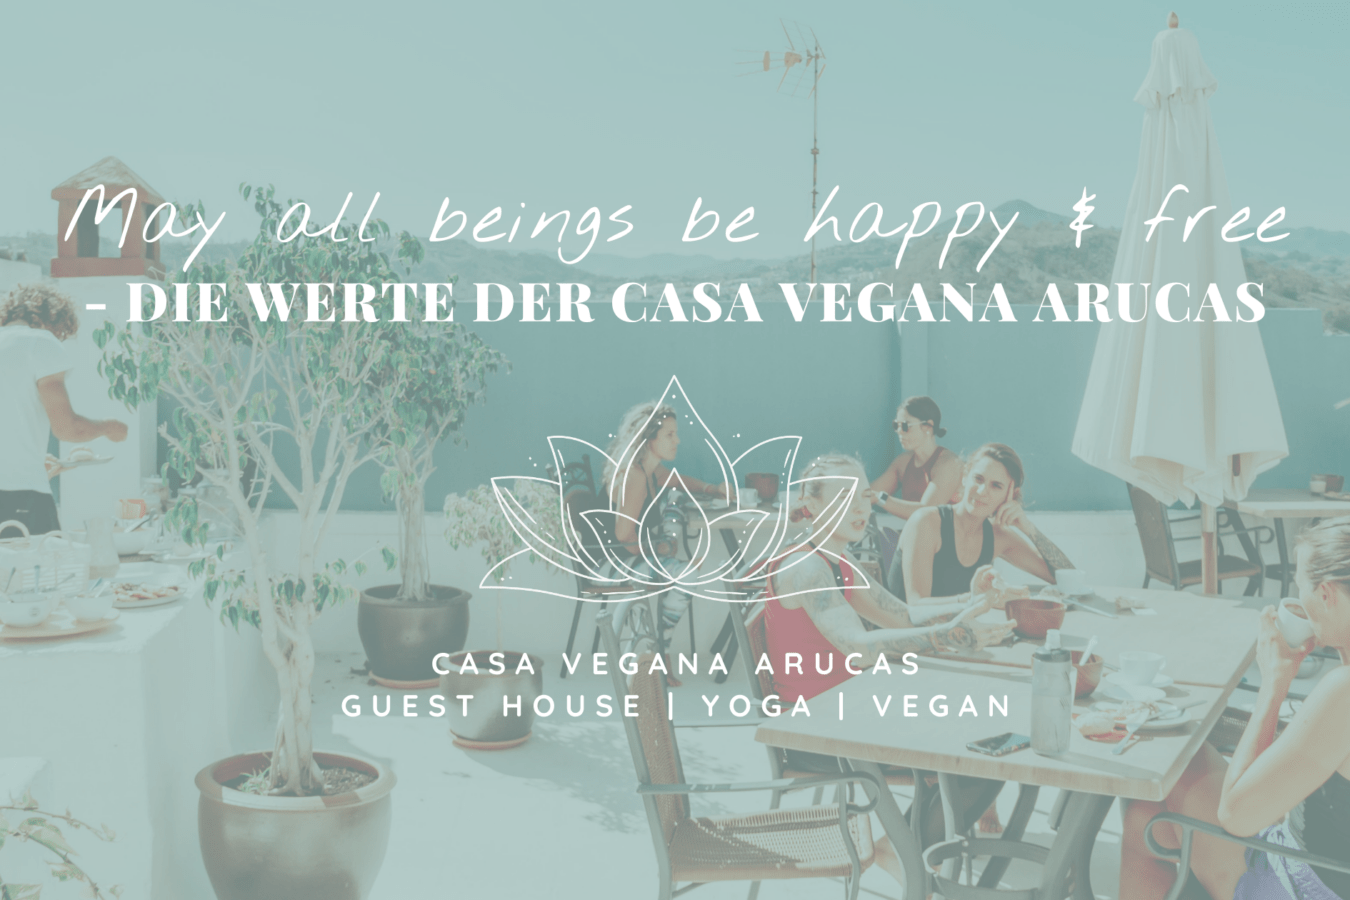 May all beings be free and happy - Die Werte der Casa Vegana Arucas